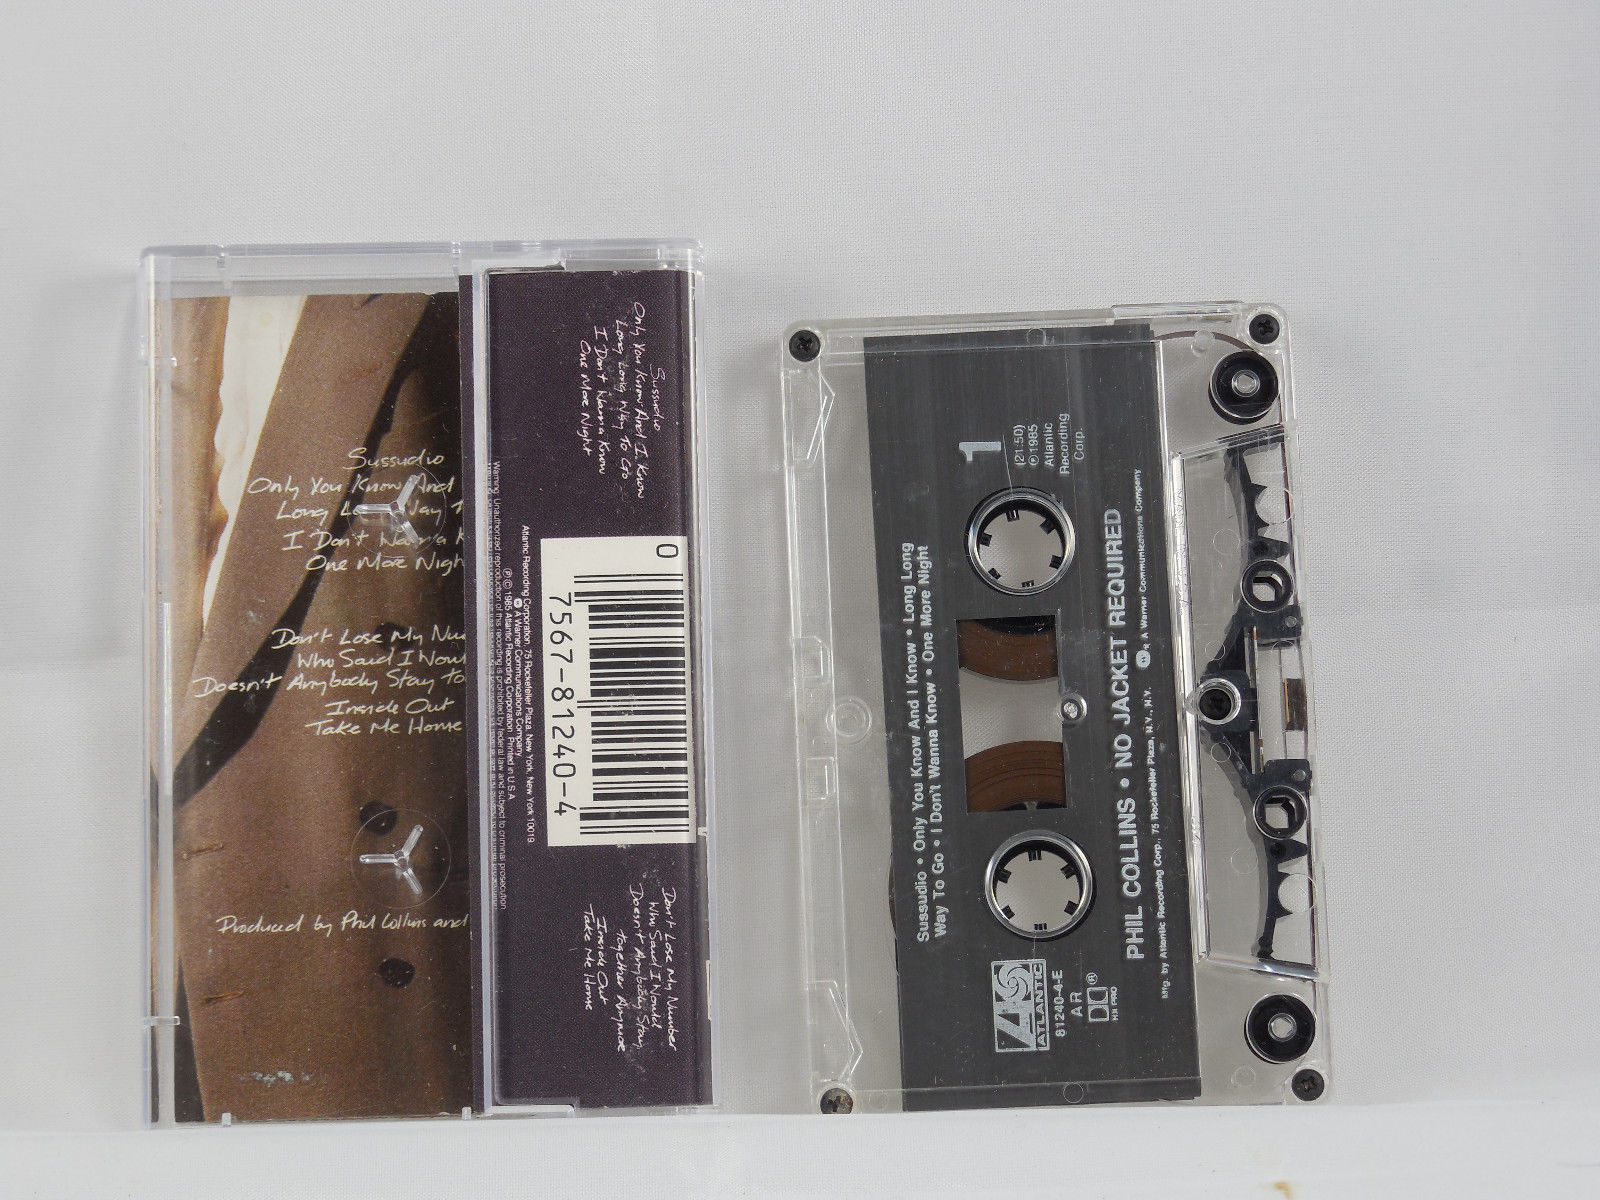 No Jacket Required by Phil Collins (Cassette, Atlantic (Label))